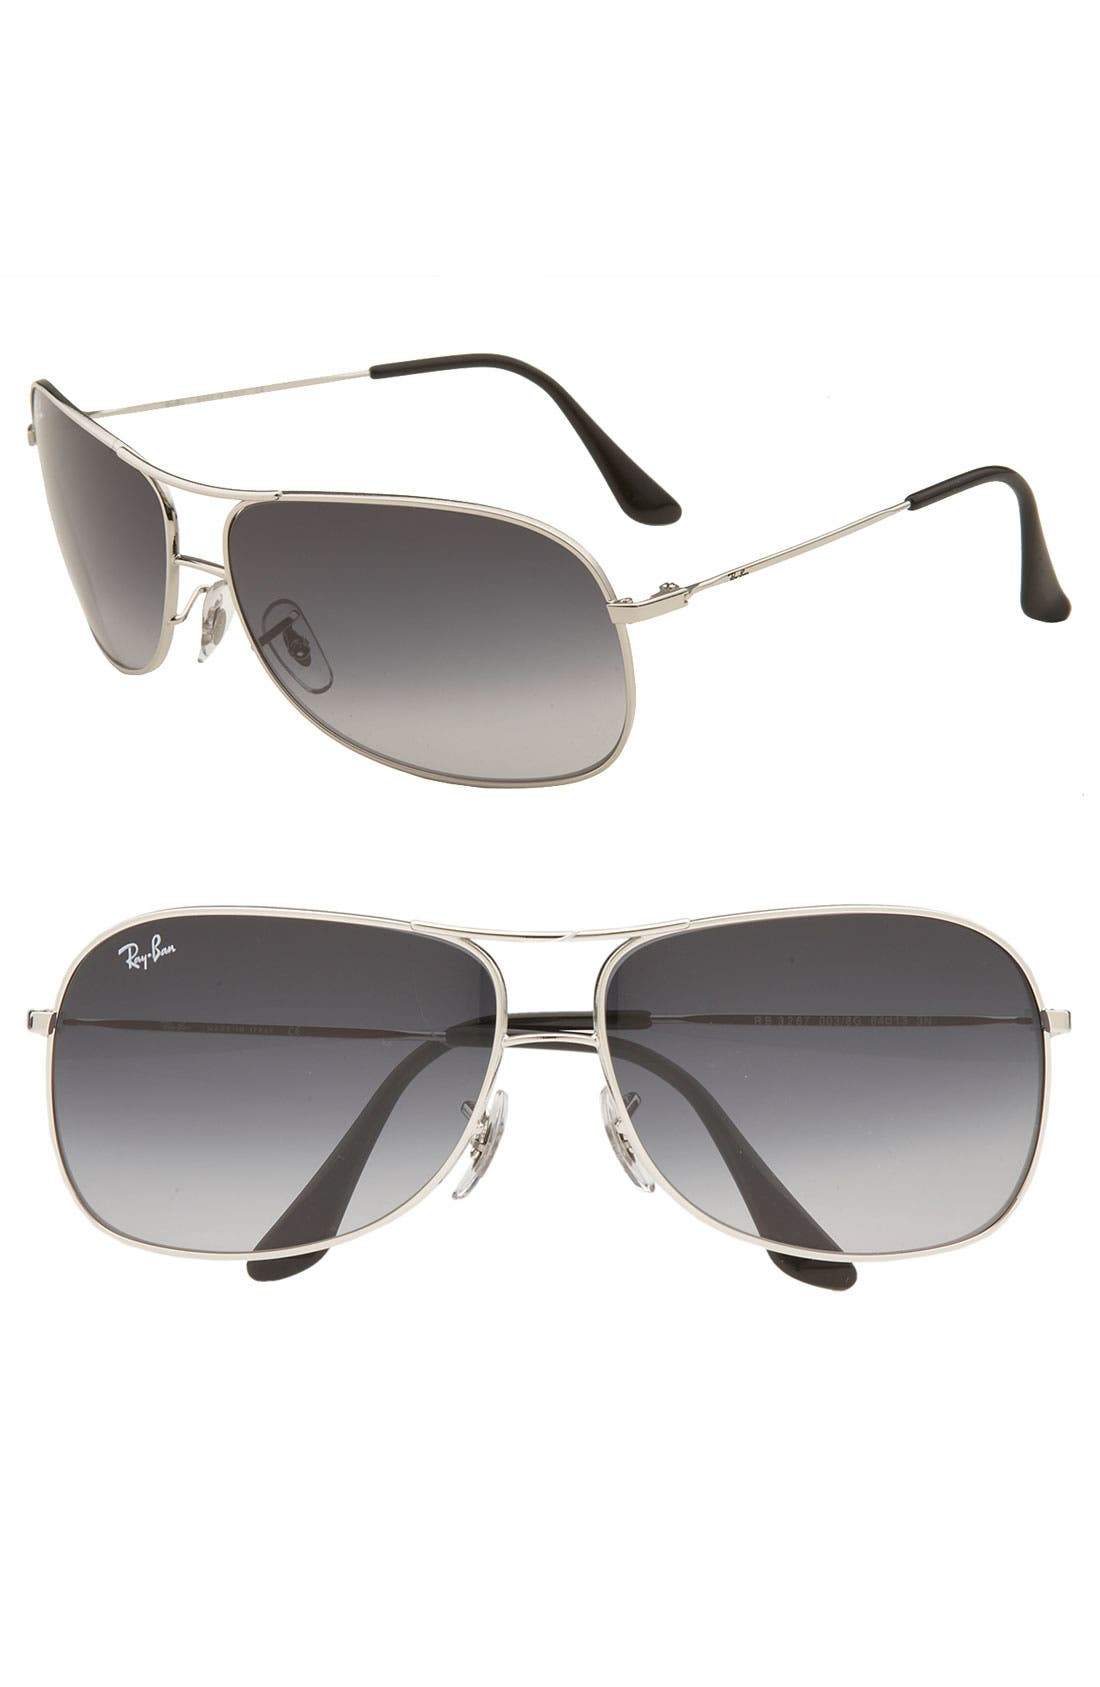 Main Image - Ray-Ban Square 64mm Wrap Aviator Sunglasses